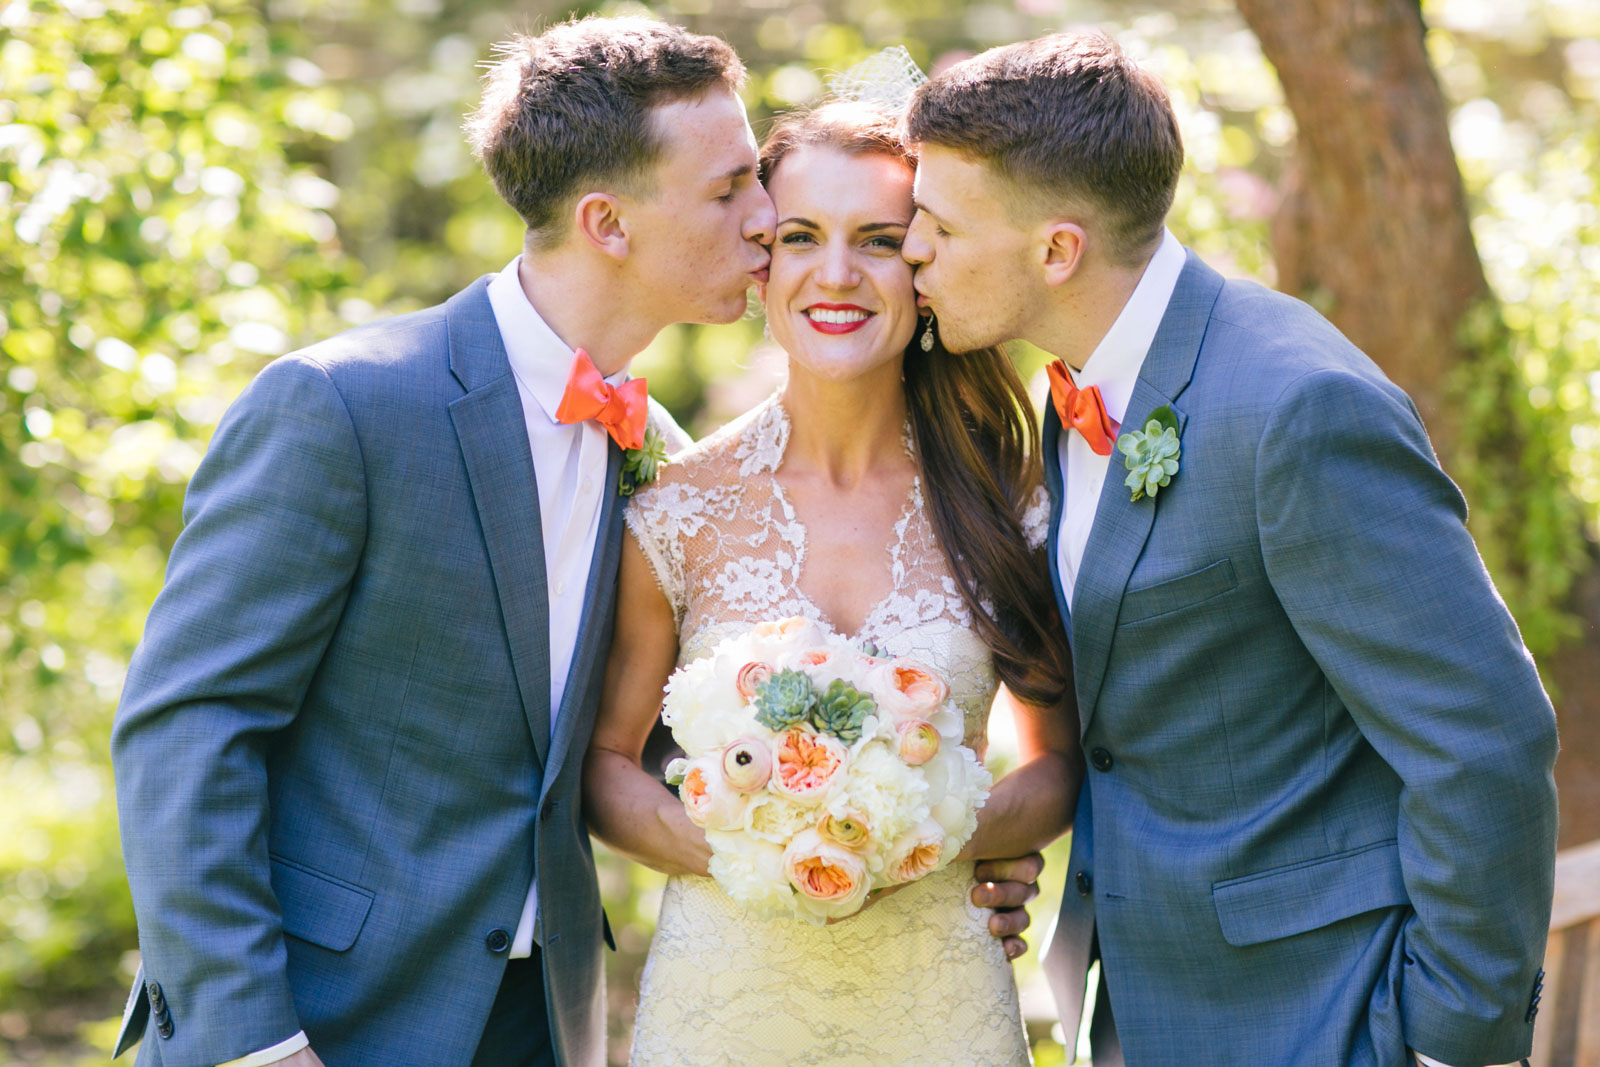 brothers of the bride kissing bride on the cheek during casual family portrait session